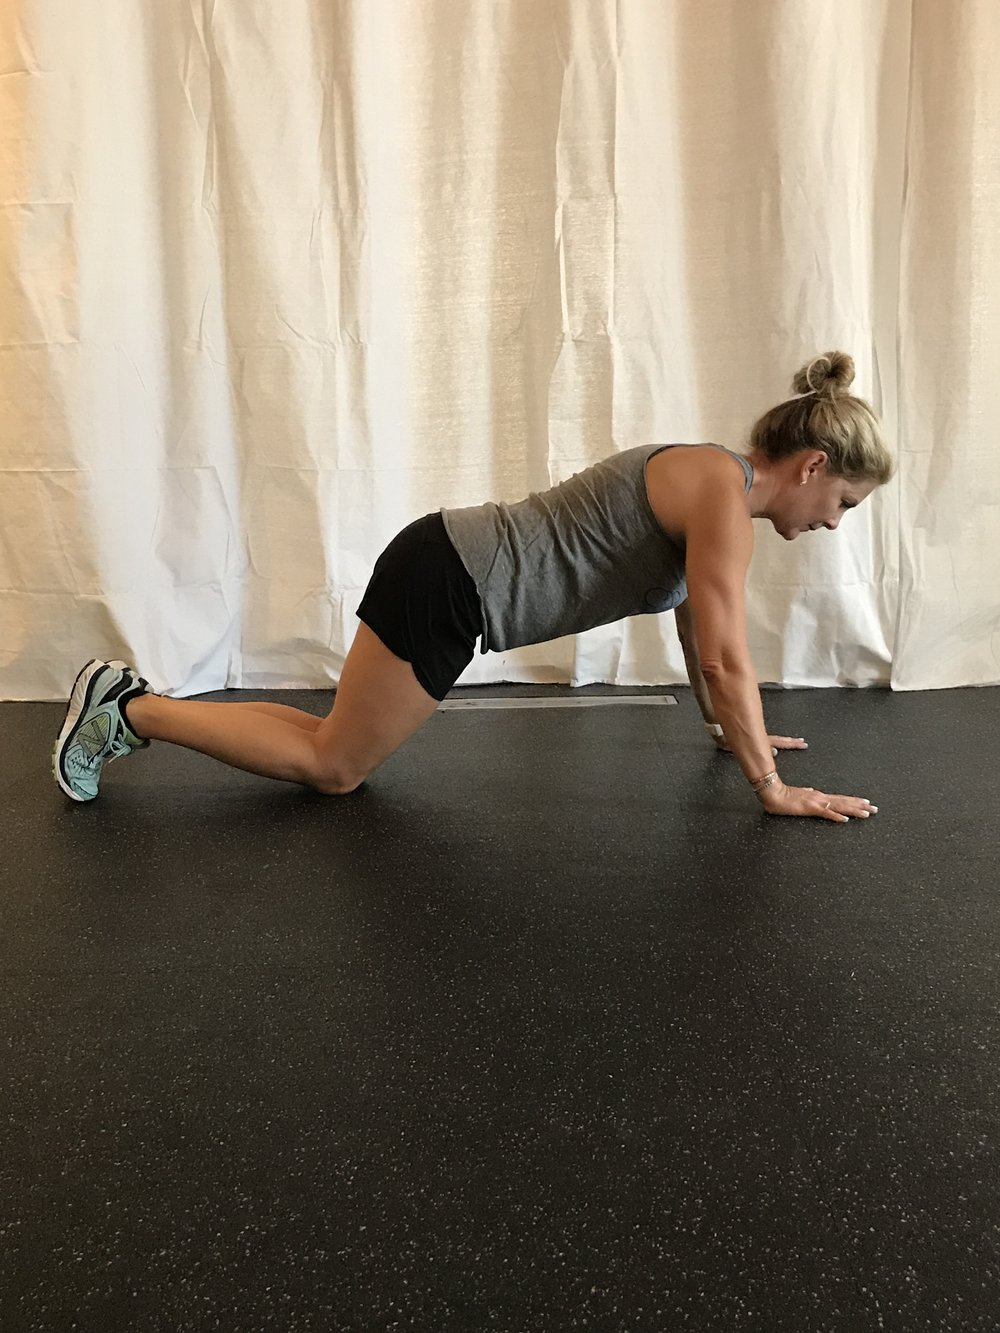 Modified pushup: just drop the knees to the earth to be your pivot point instead of toes